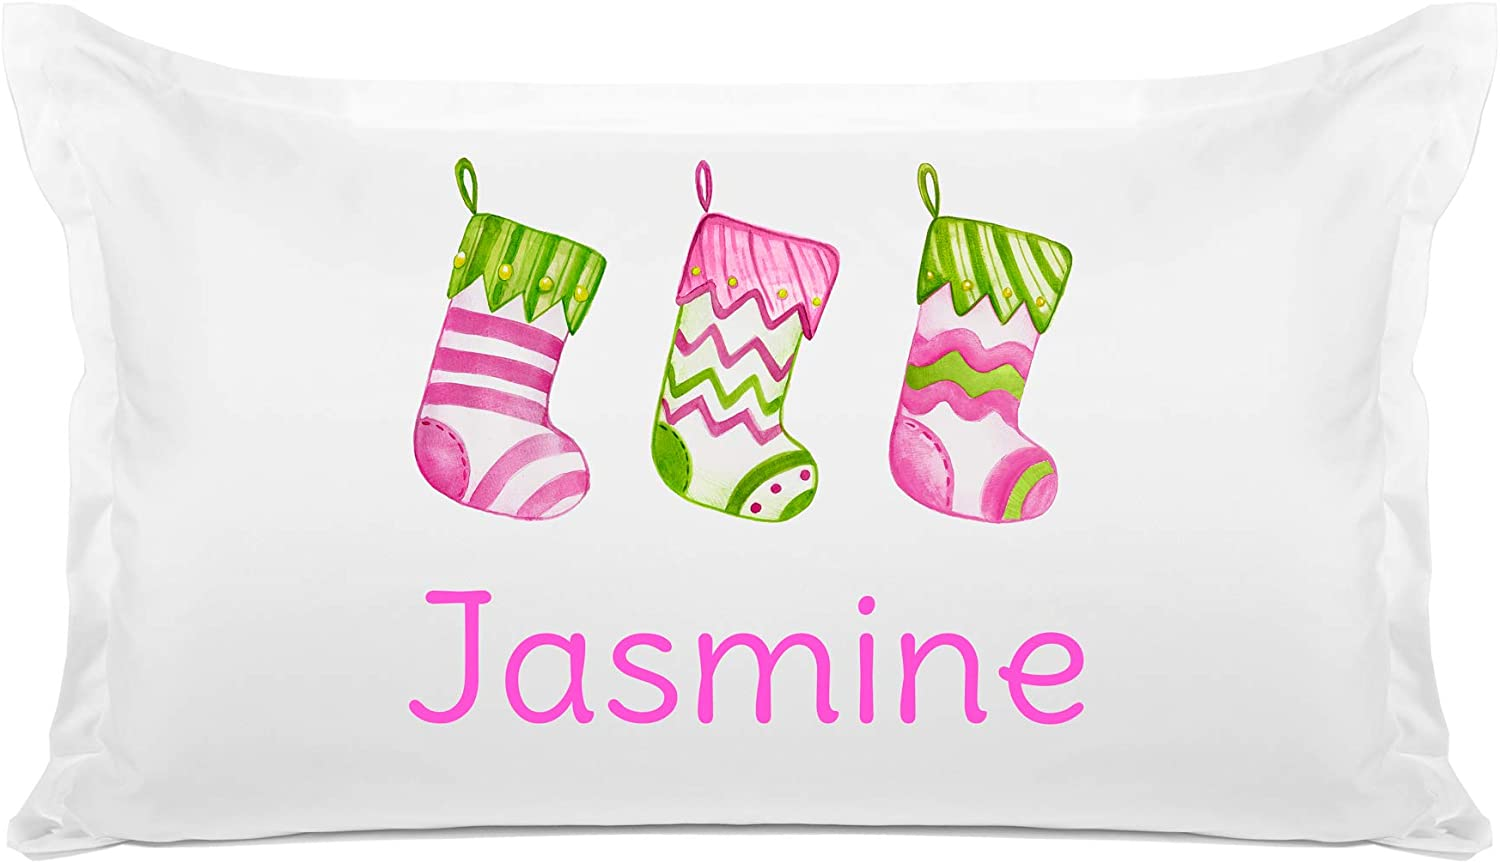 Di Lewis Kids Holiday Pillowcase – Christmas Stocking - Personalize with Name - Hypoallergenic, Breathable, Anti Wrinkle, White - 20x30 Standard Queen